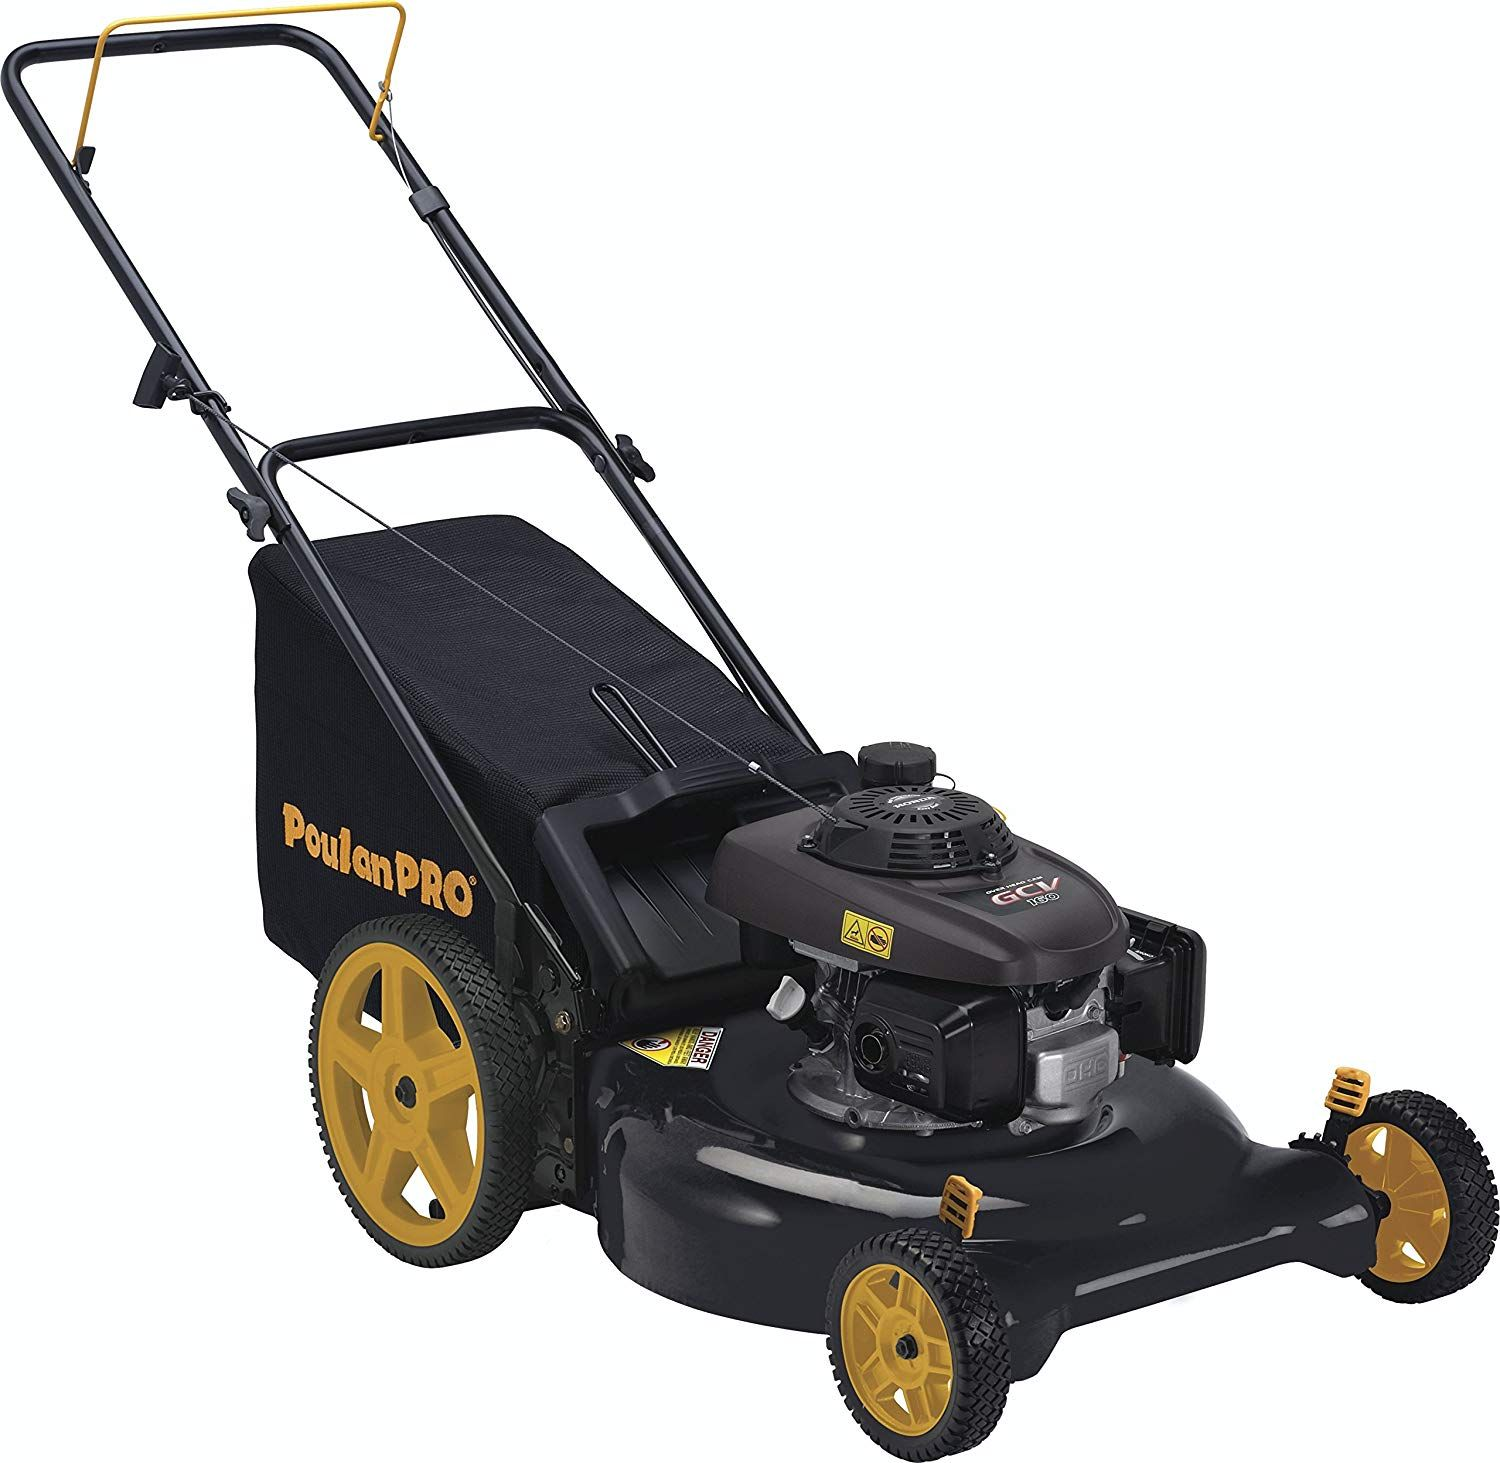 Poulan Pro Mower Side Discharge Walk Behind Mower Lawn Mower Tractor Mower